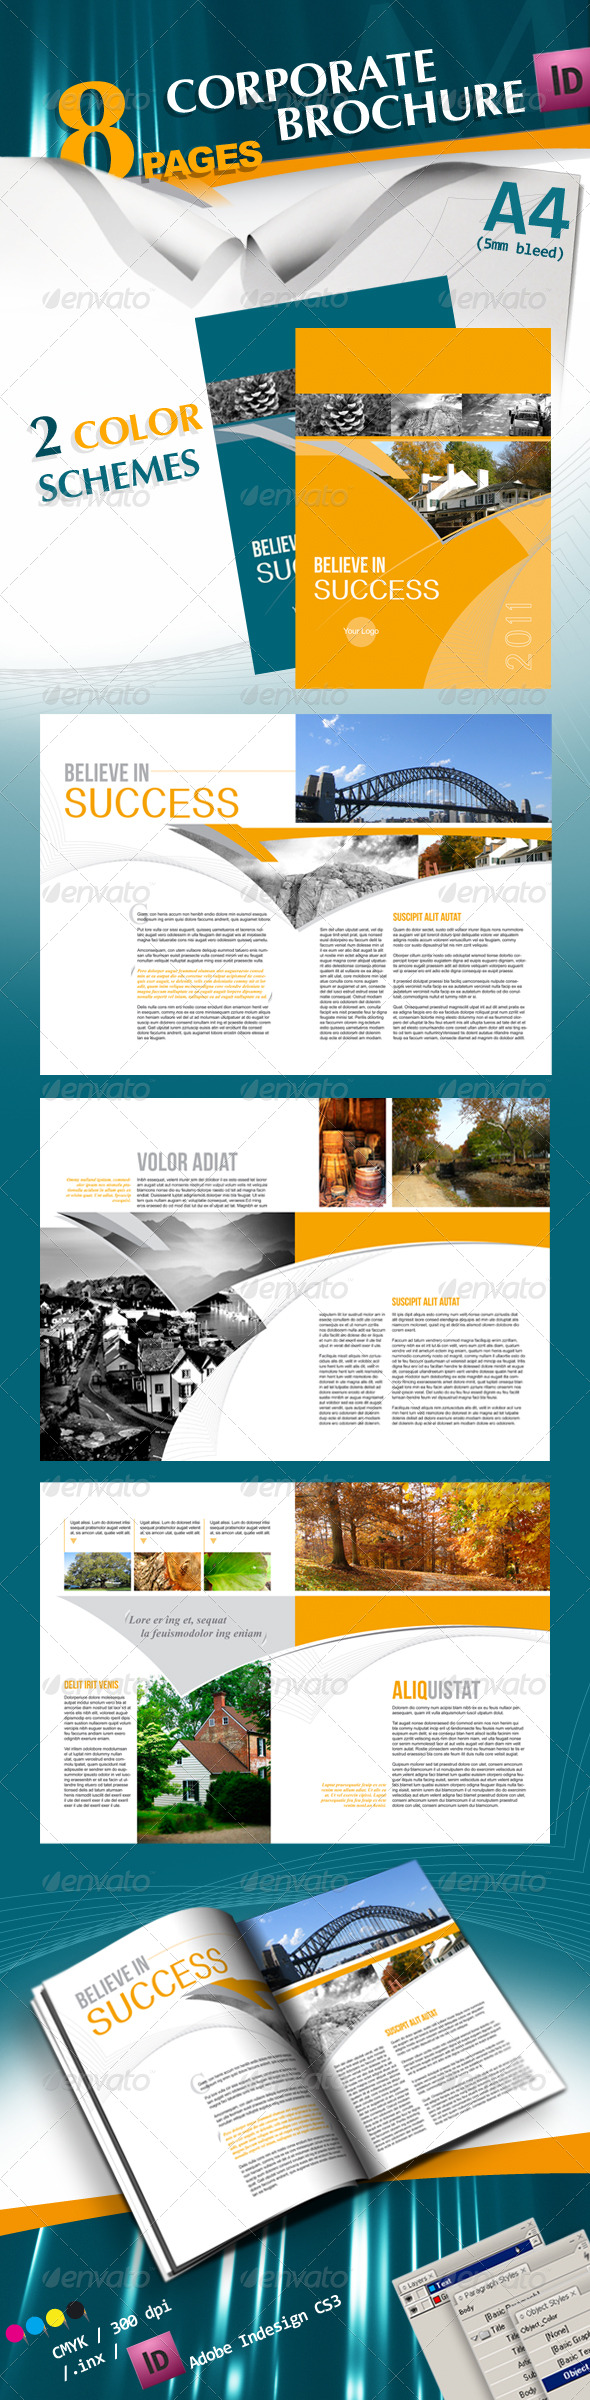 GraphicRiver Corporate A4 Brochure in 2 Schemes of Color 160374